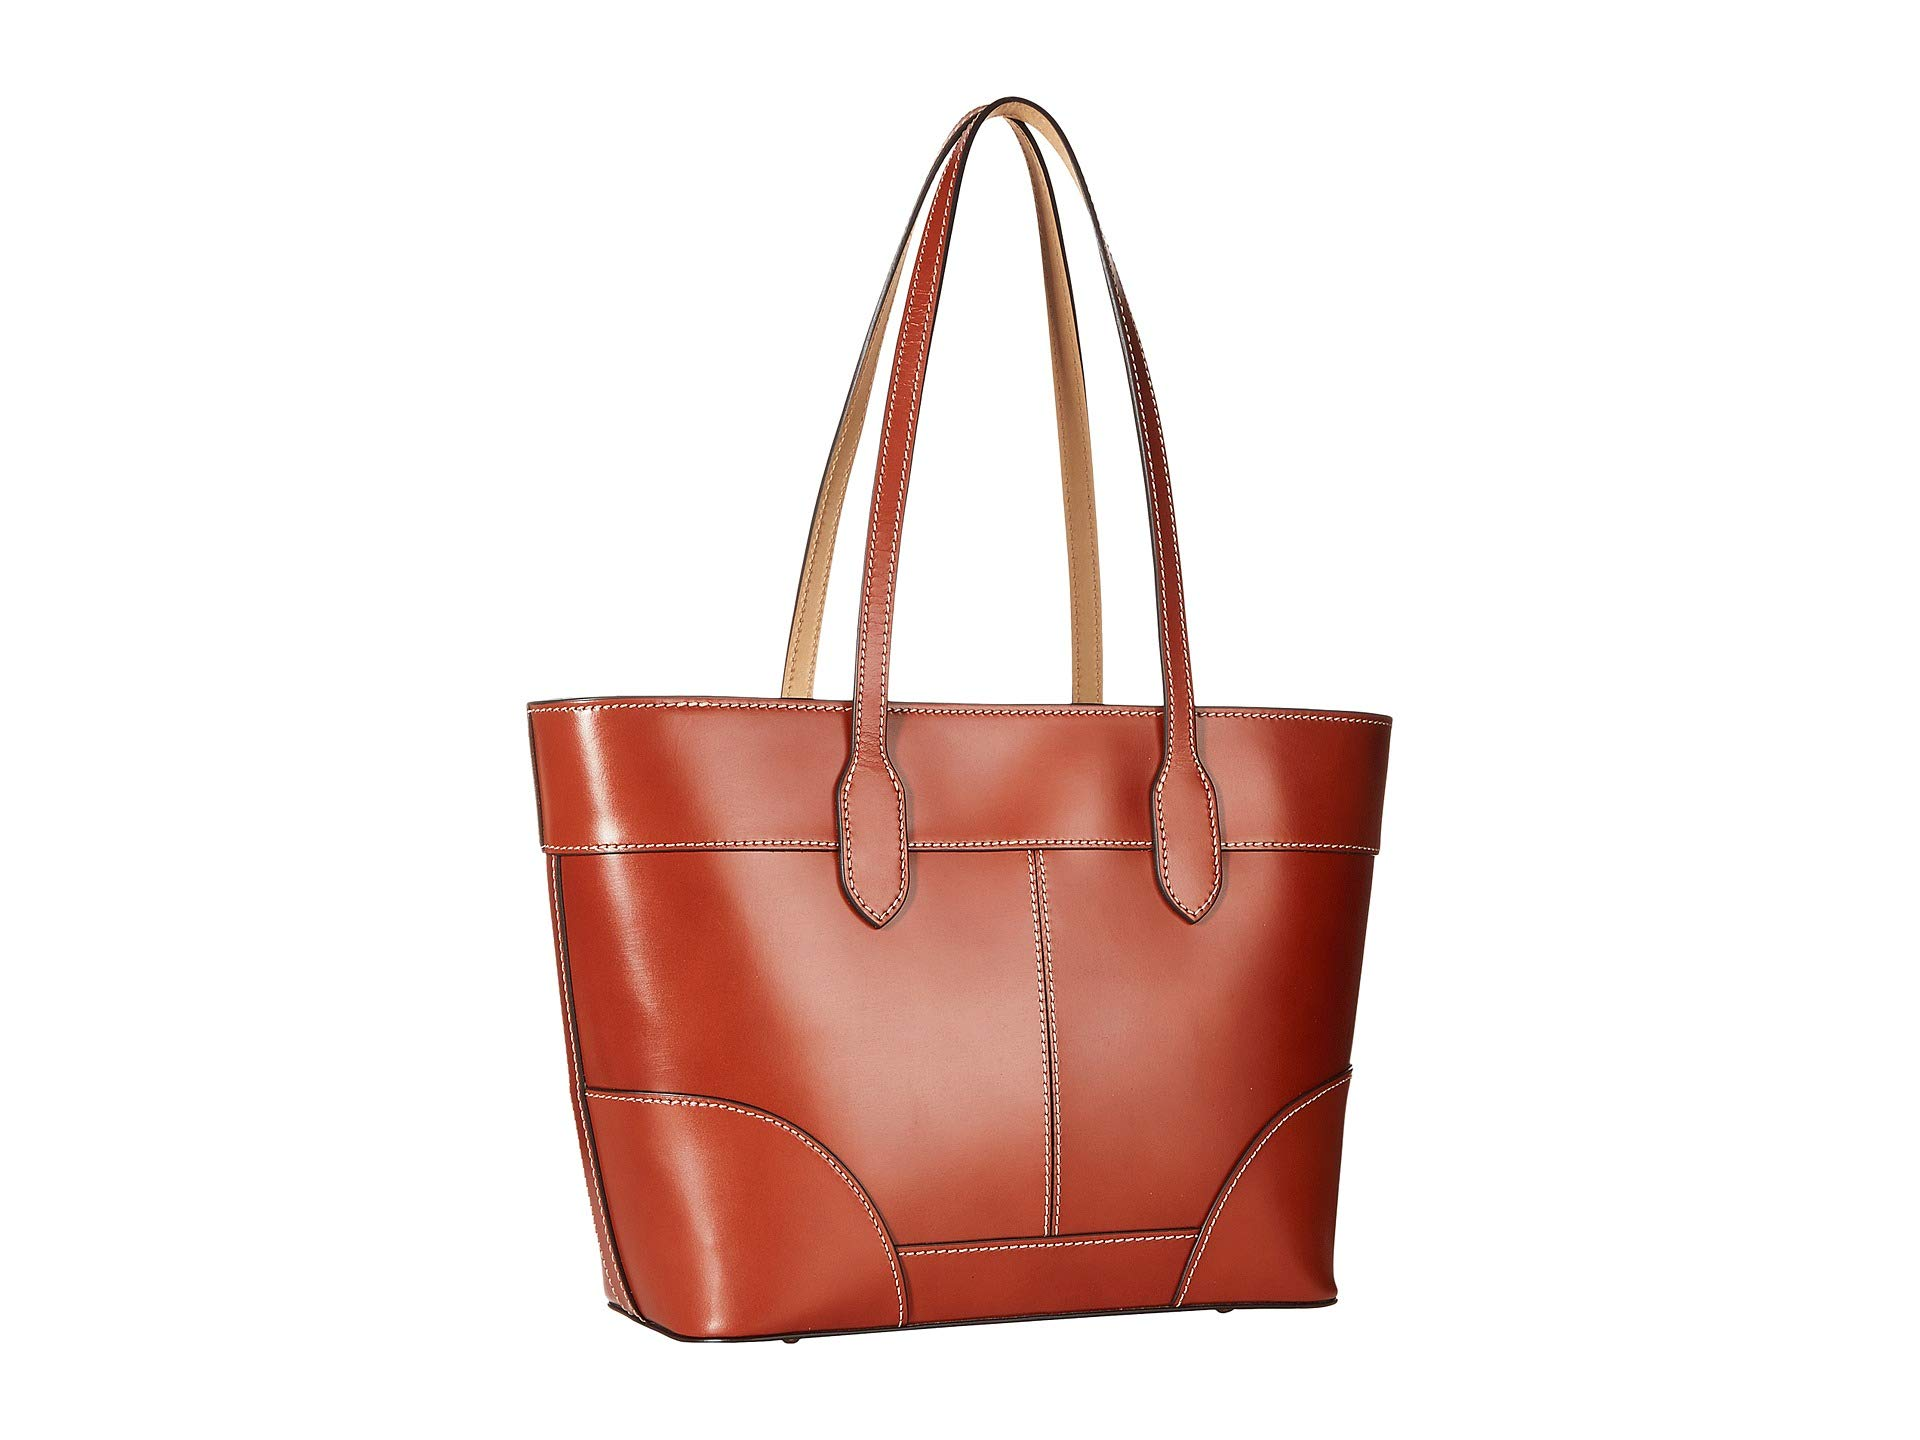 Tote amp; tan Selleria Dooney Bourke Tan Trim qg4P8t